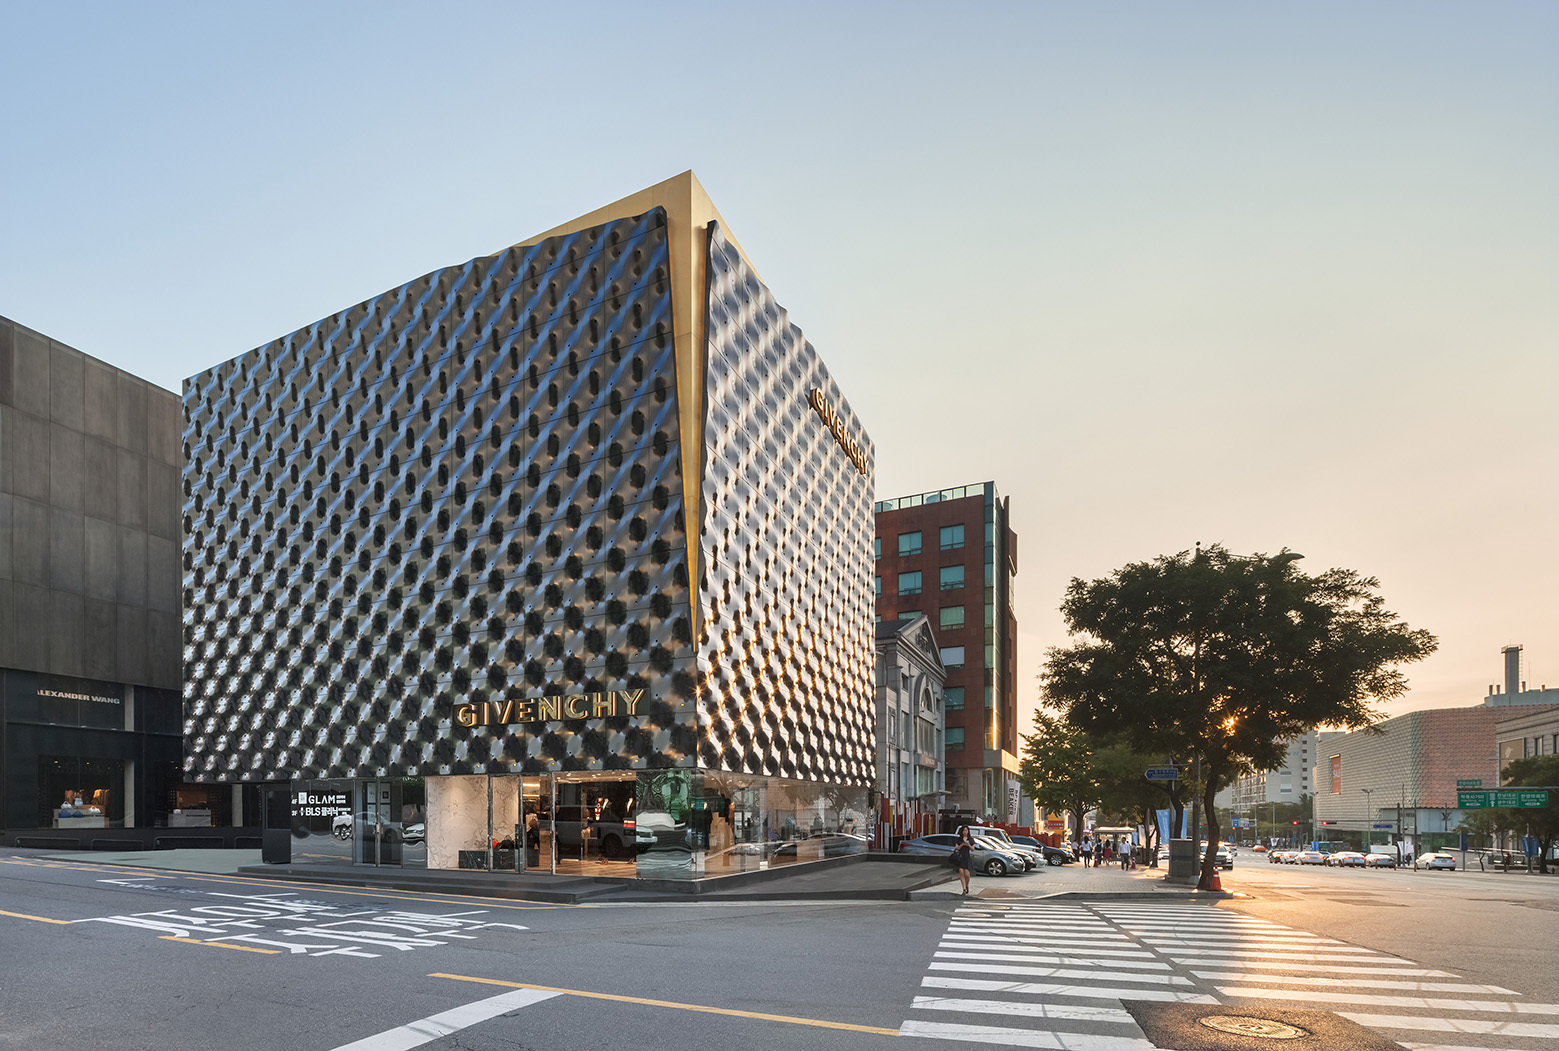 givenchy-flagship-store-in-seoul-piuarch-10